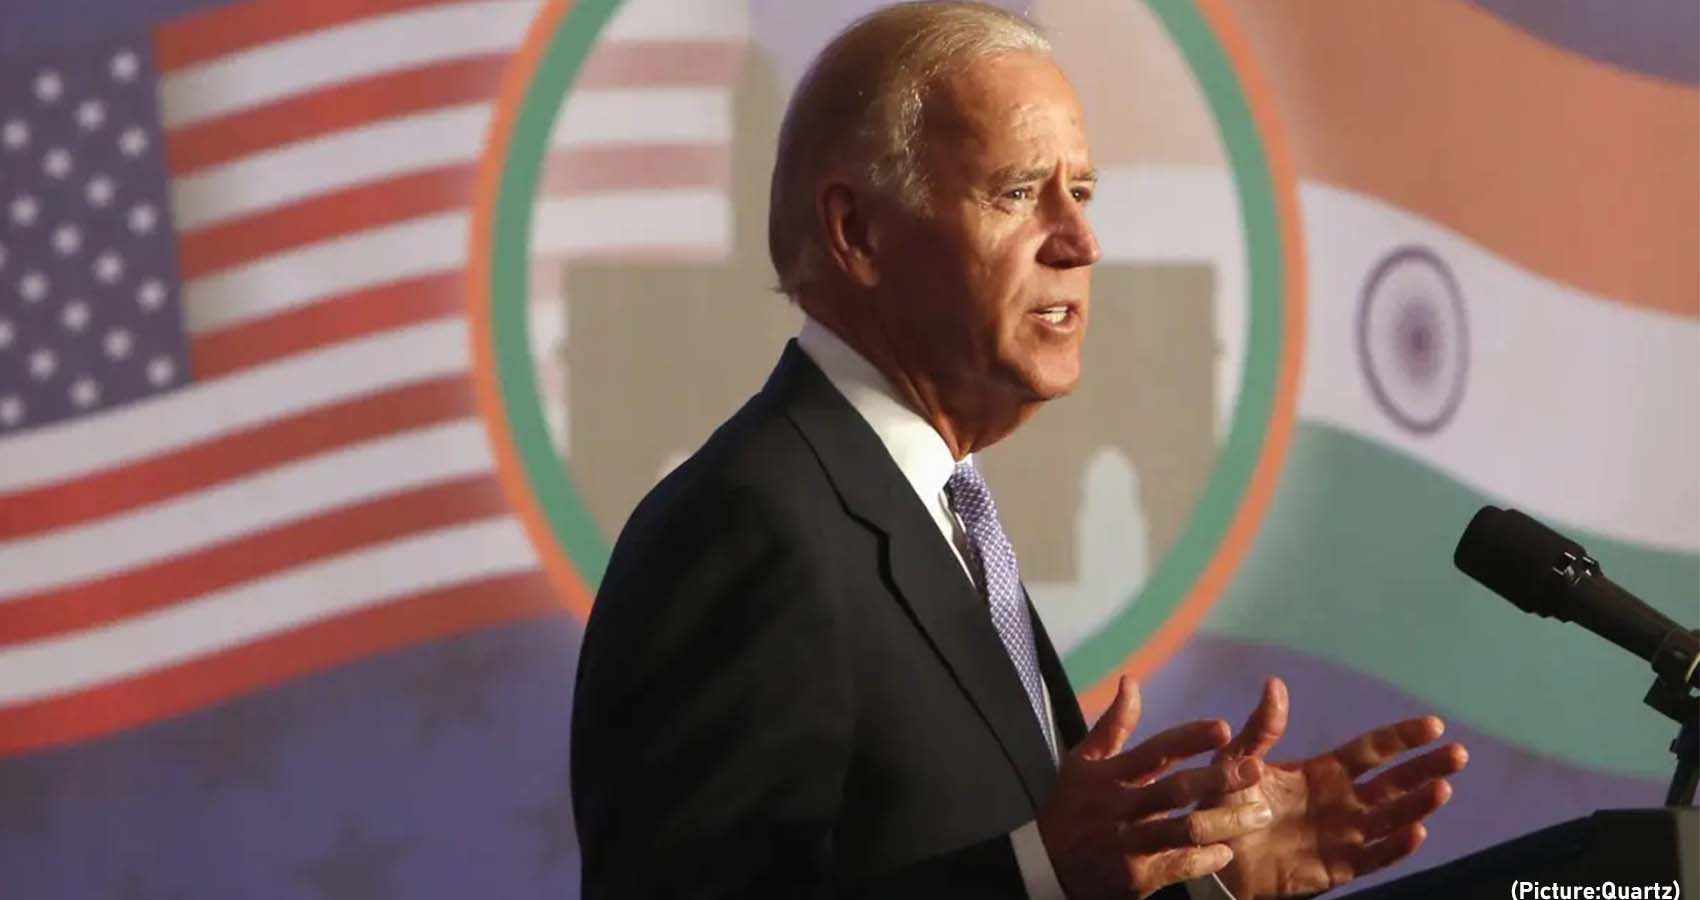 FIACONA Is Grateful to Biden, Harris For Emphasizing Need For Democratic Values In India